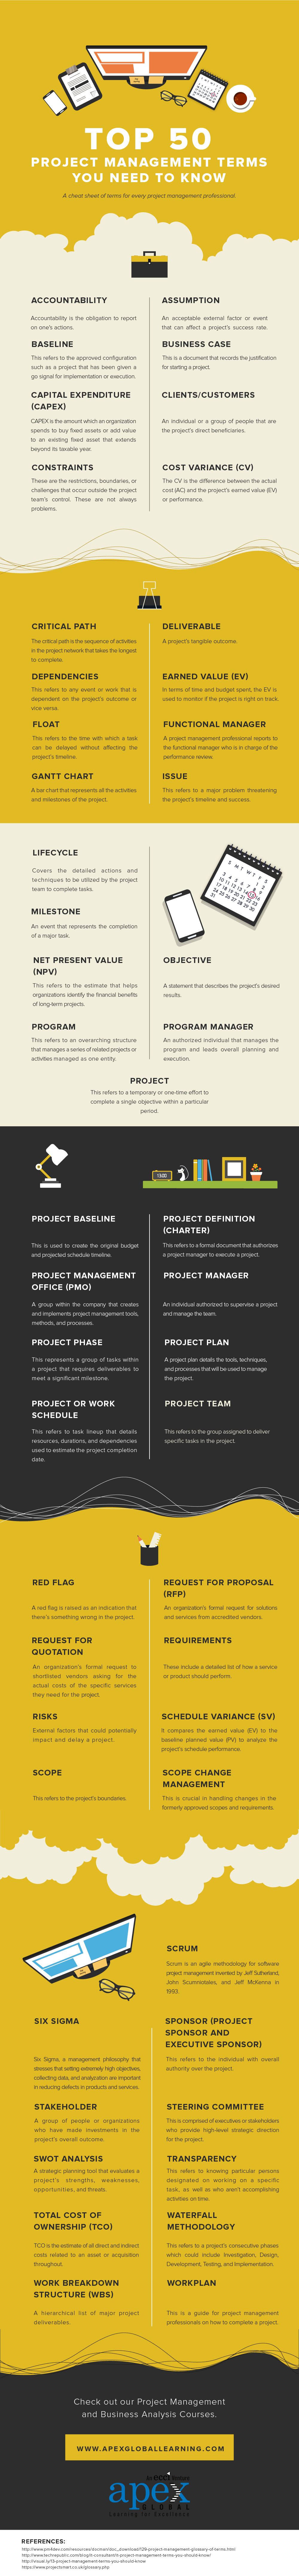 What the most common project management jargon actually mean what the most common project management jargon actually mean infographic project management certificationprogram managementoffice xflitez Image collections